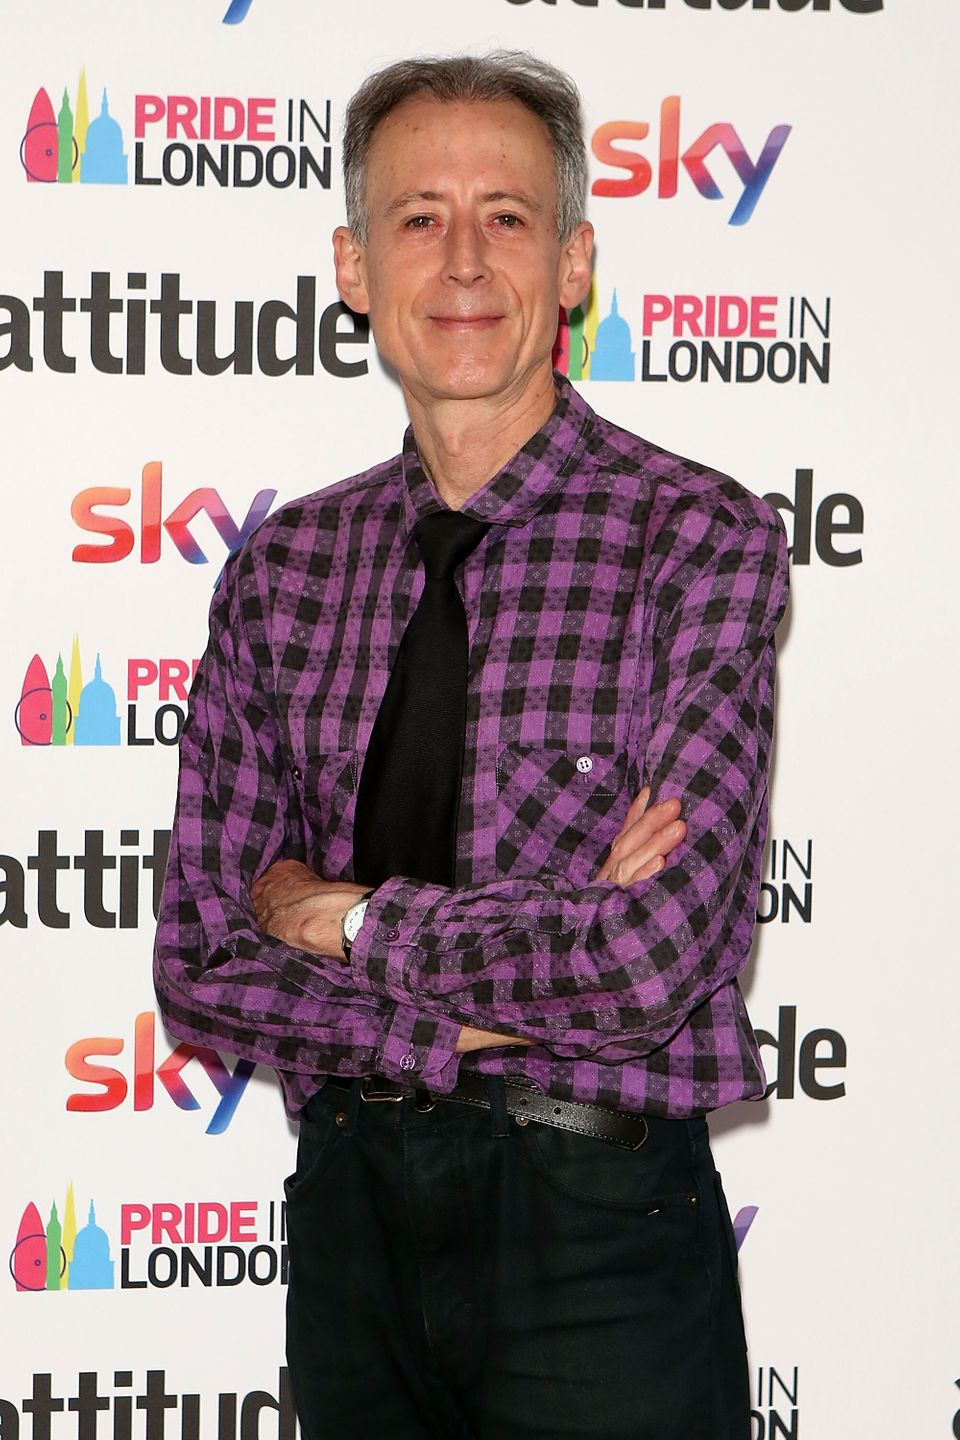 Peter Tatchell at the Attitude Pride Awards in